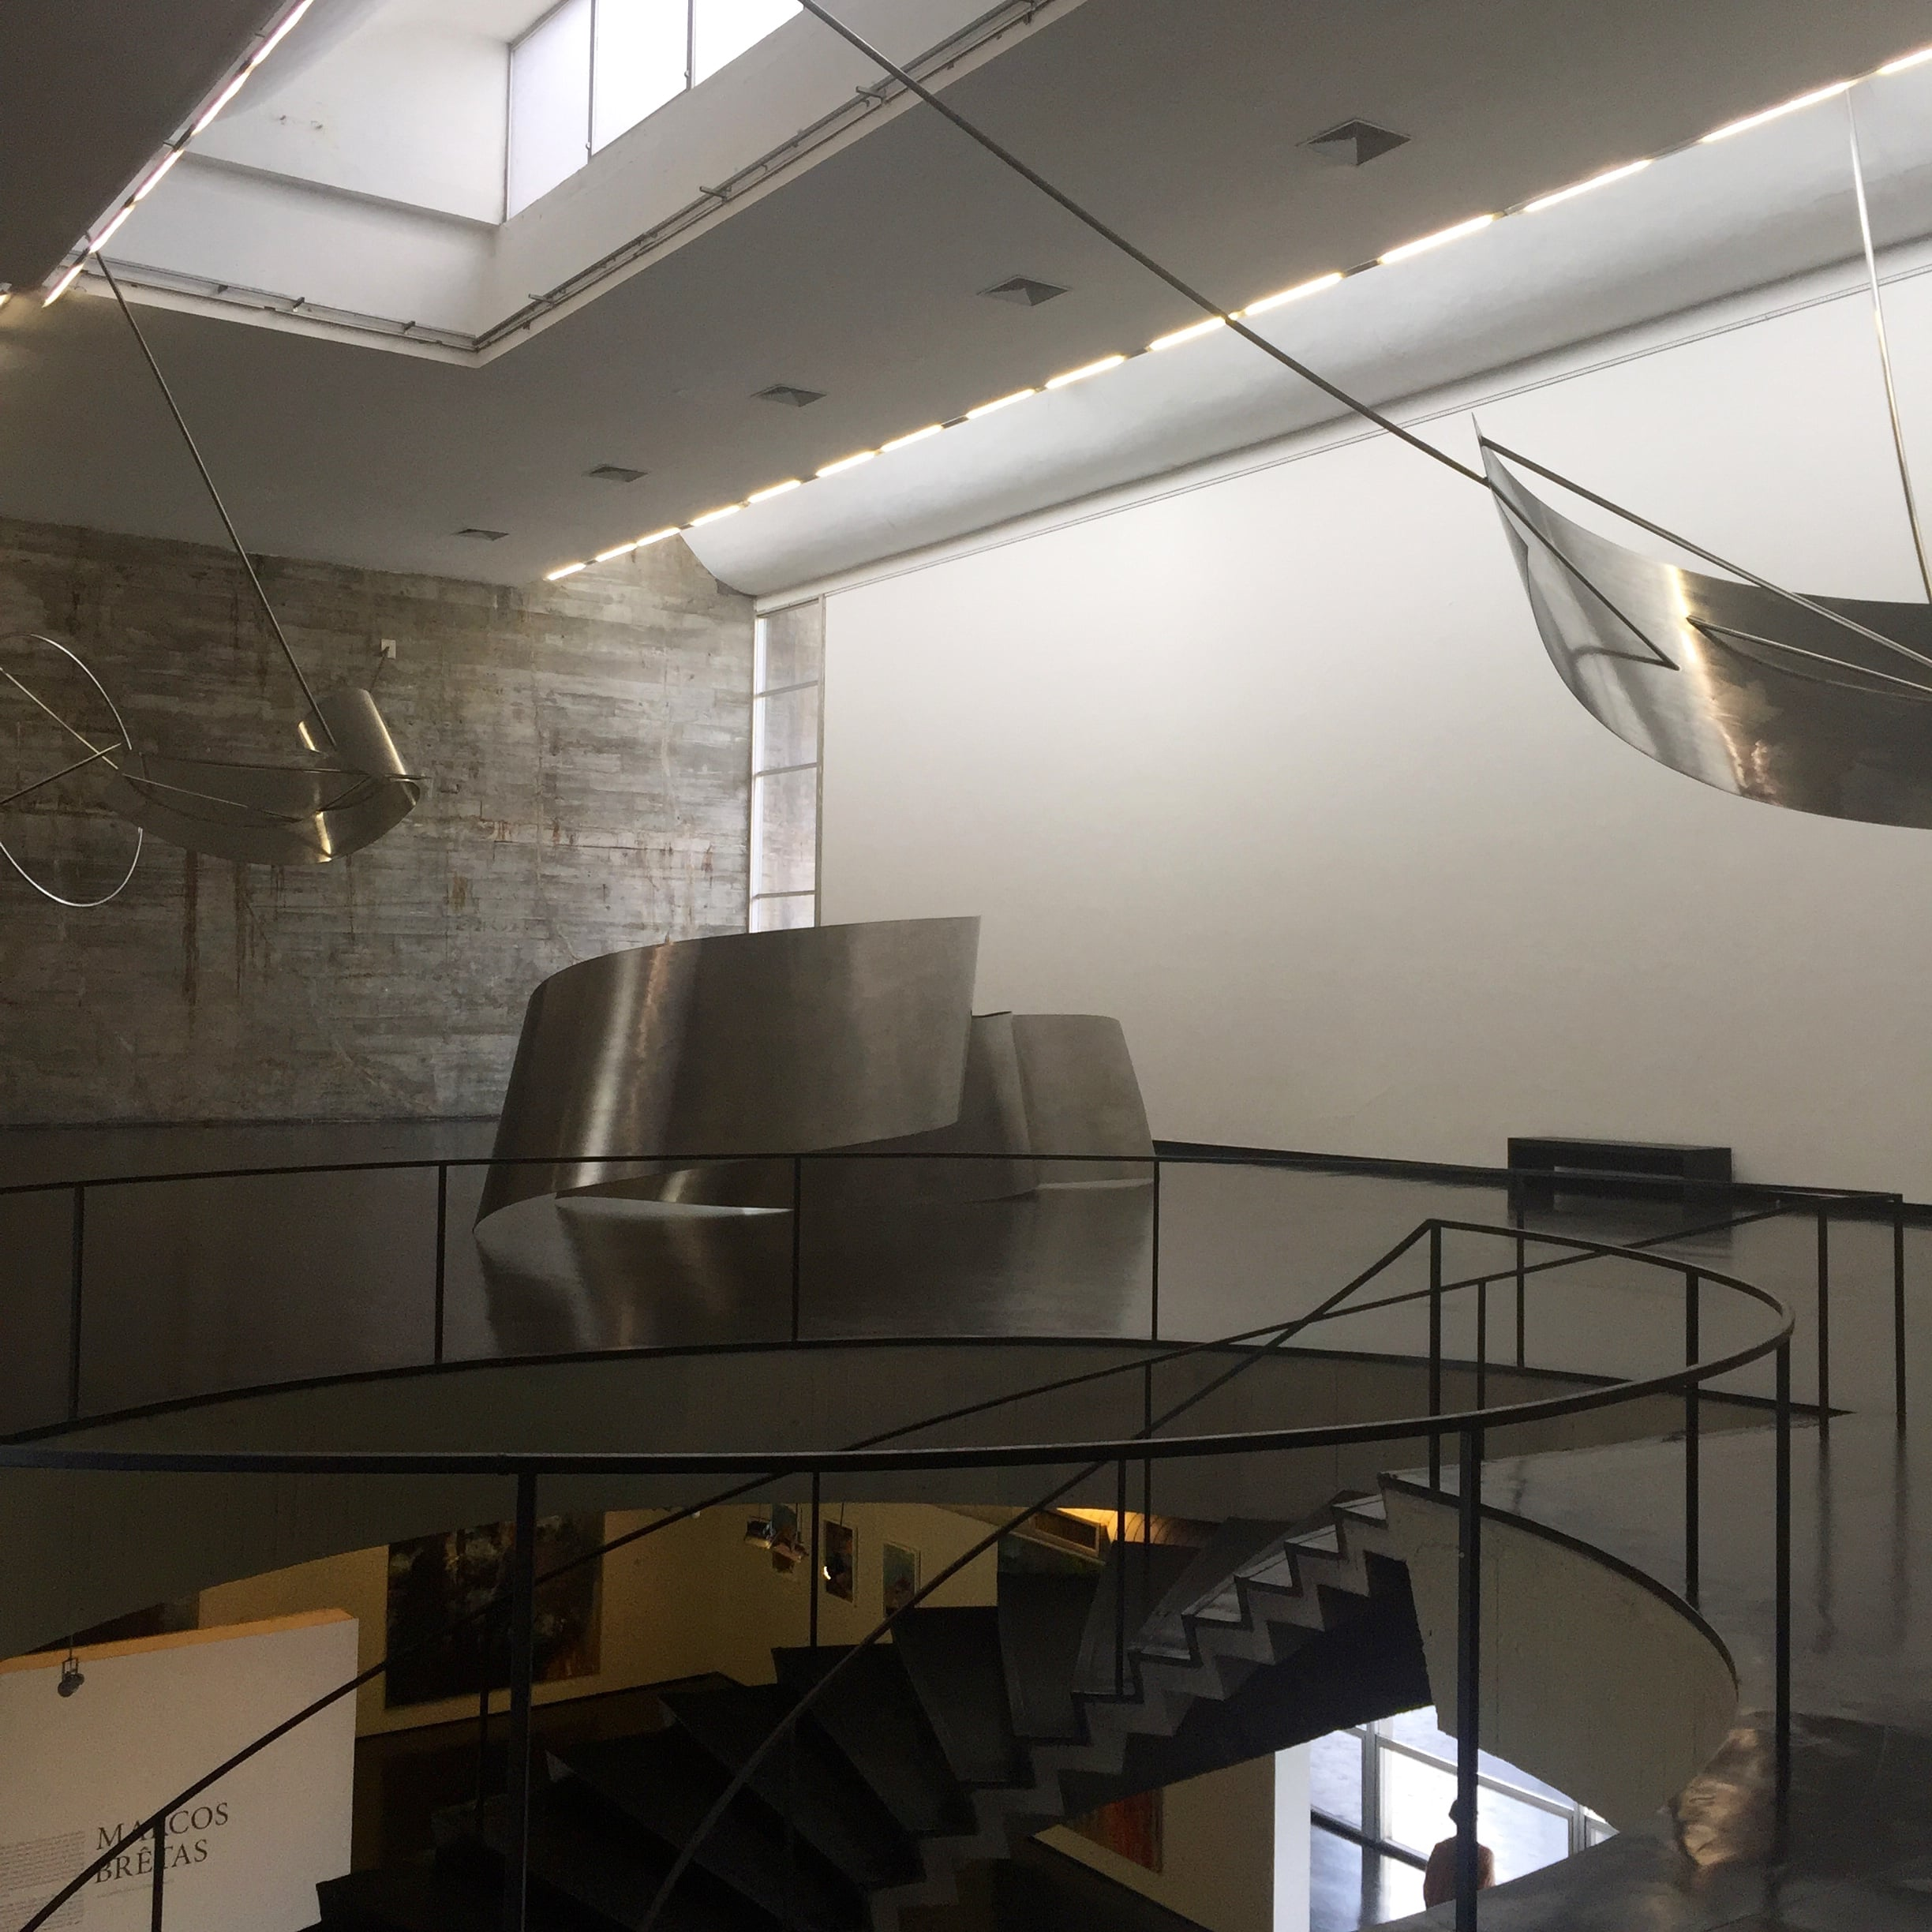 Large metal sculptures fill the first room on the second floor